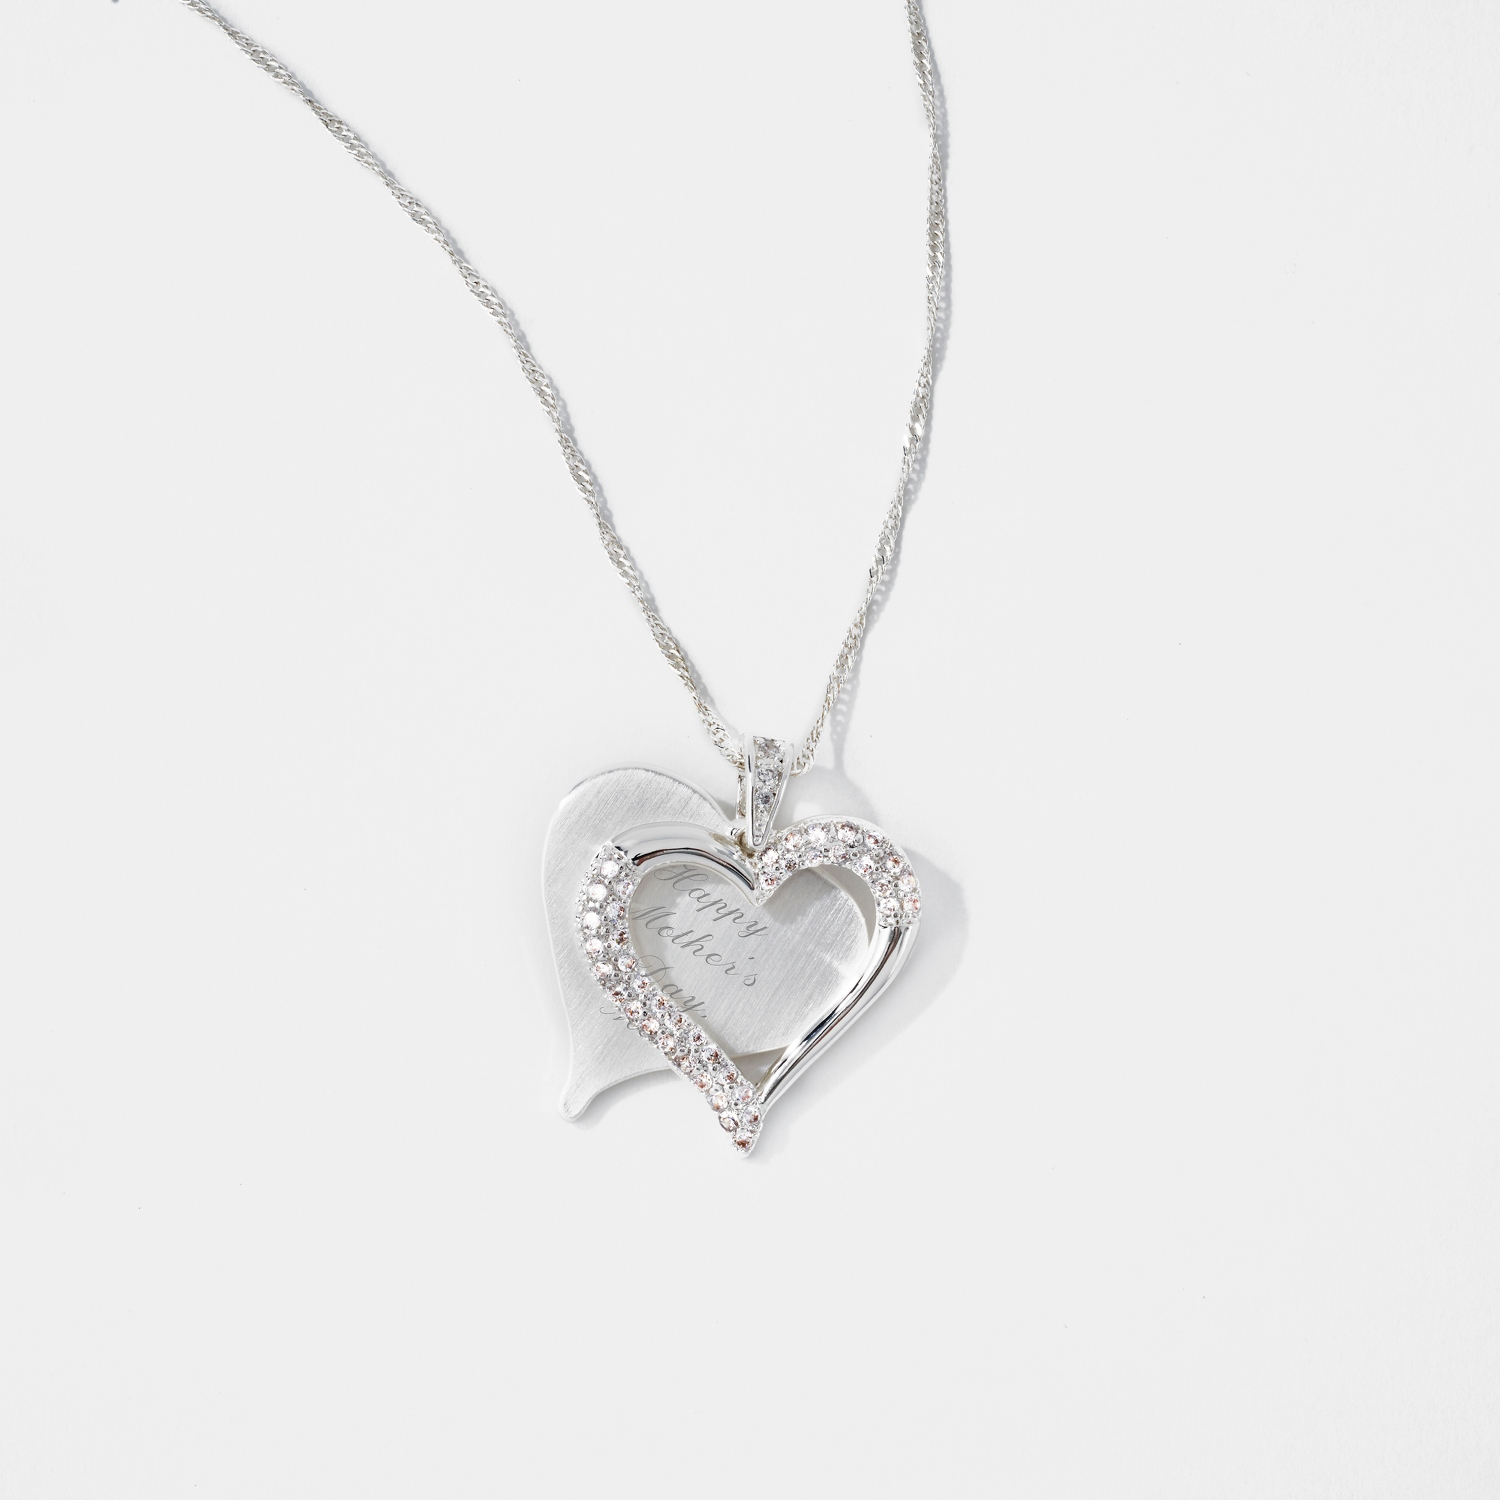 pendant silver jewellery accessories heart odabash shop necklace melissa